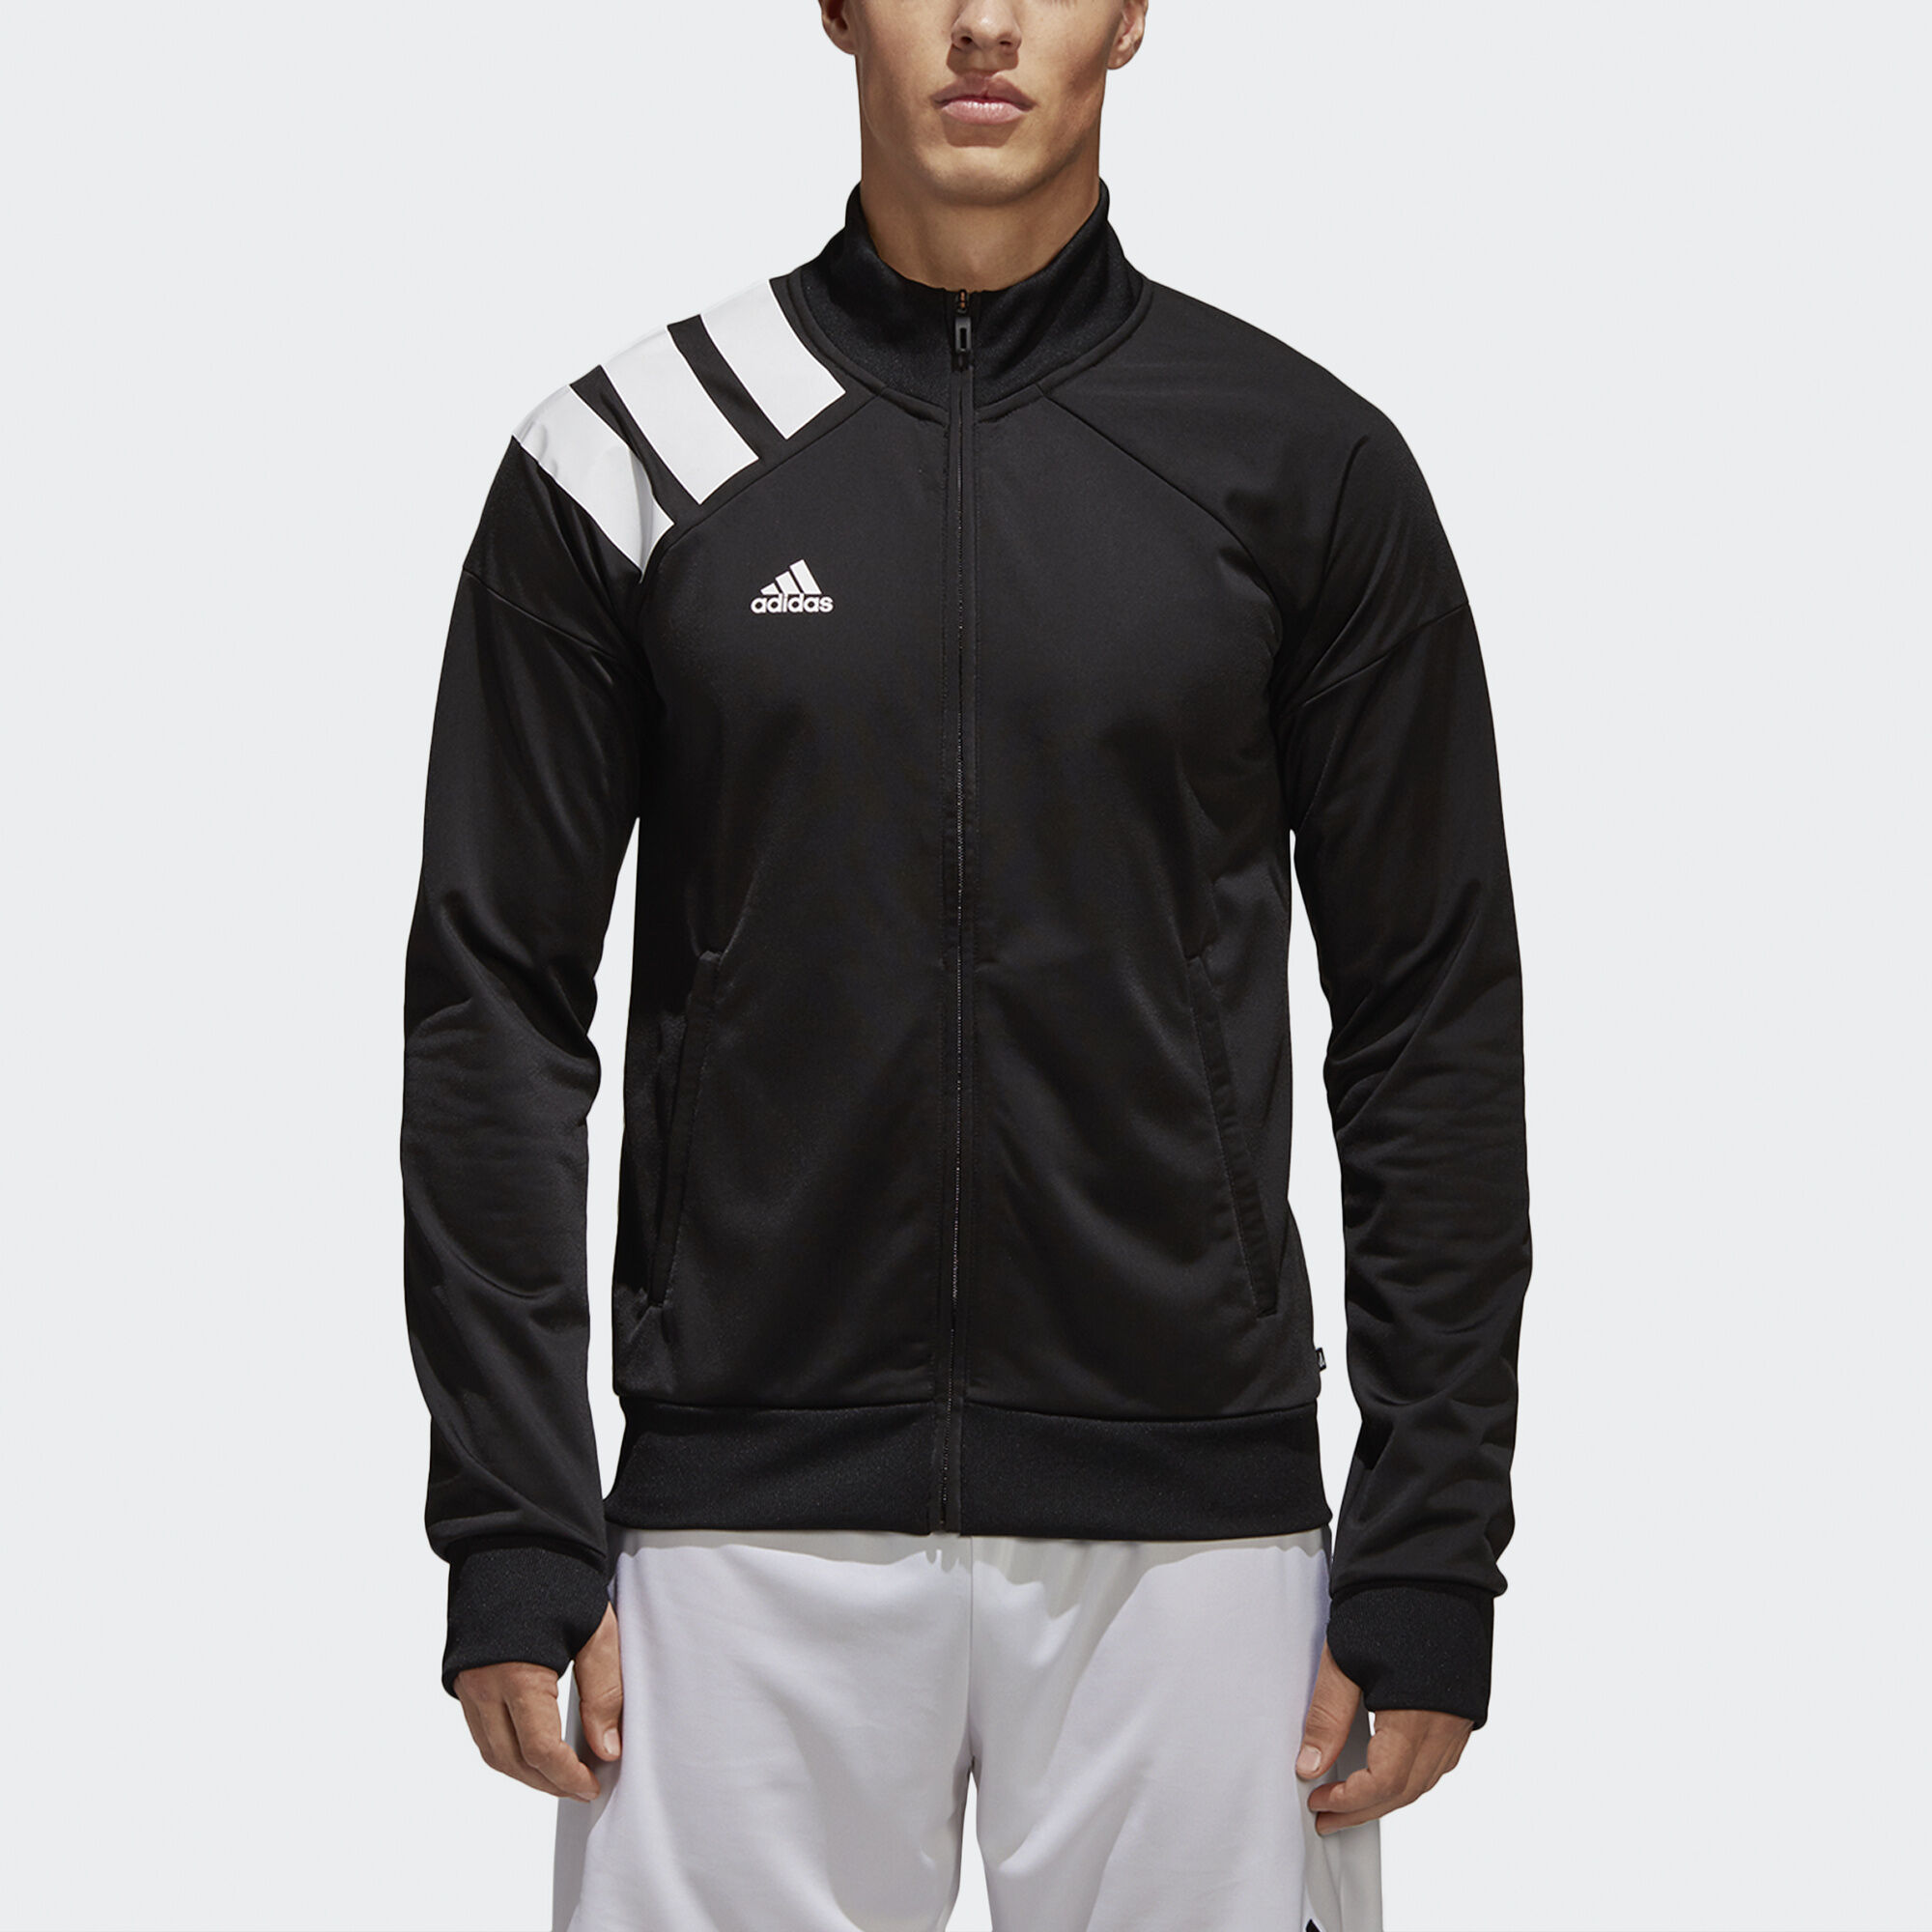 adidas ensemble survetement